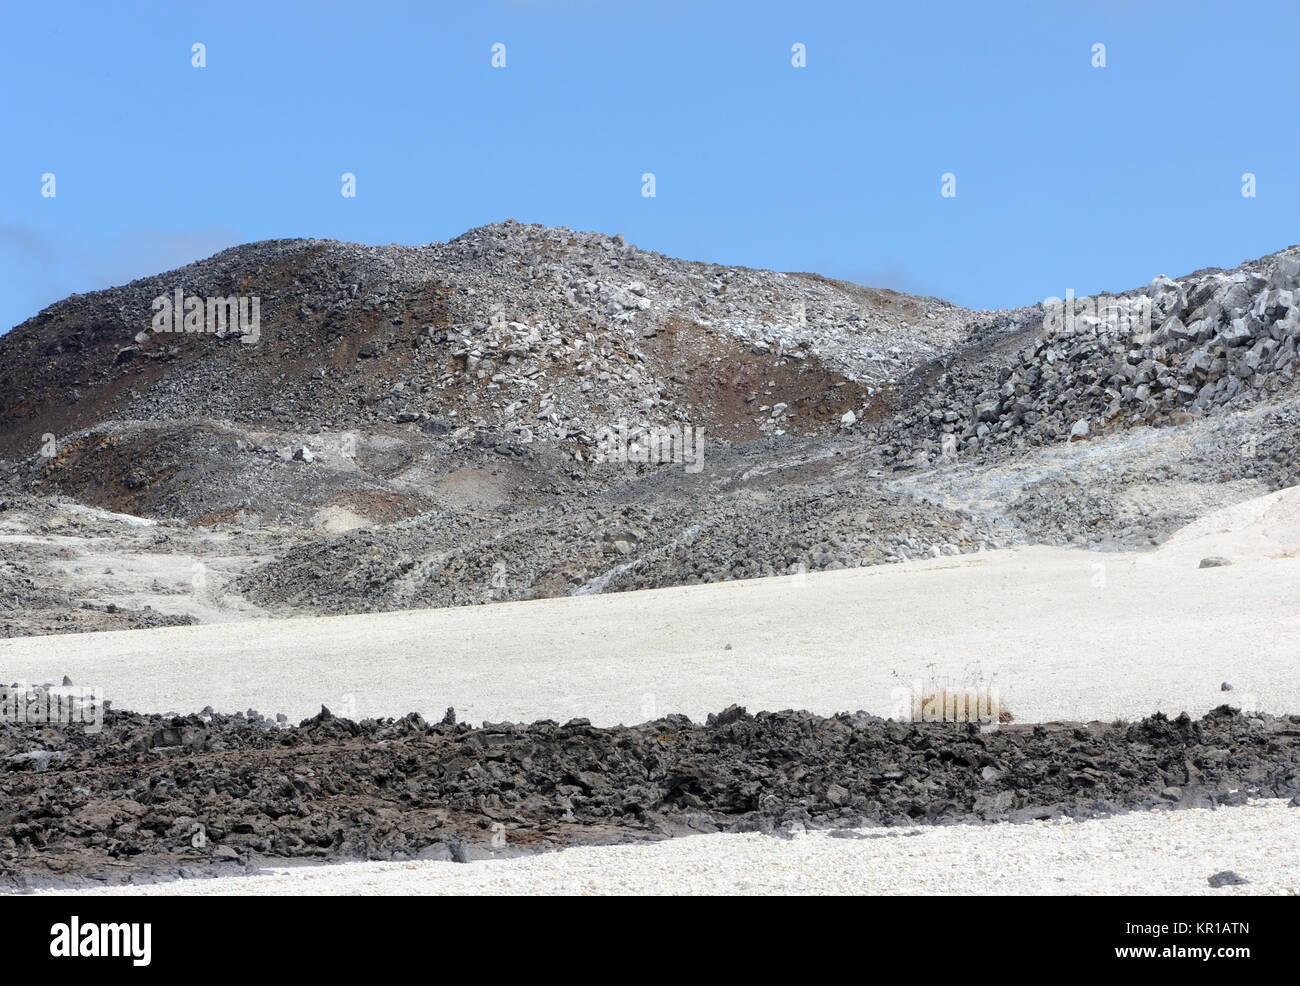 Eroded sulphur minerals below active fumaroles look like white sand and black lava rocks within the caldera of the - Stock Image